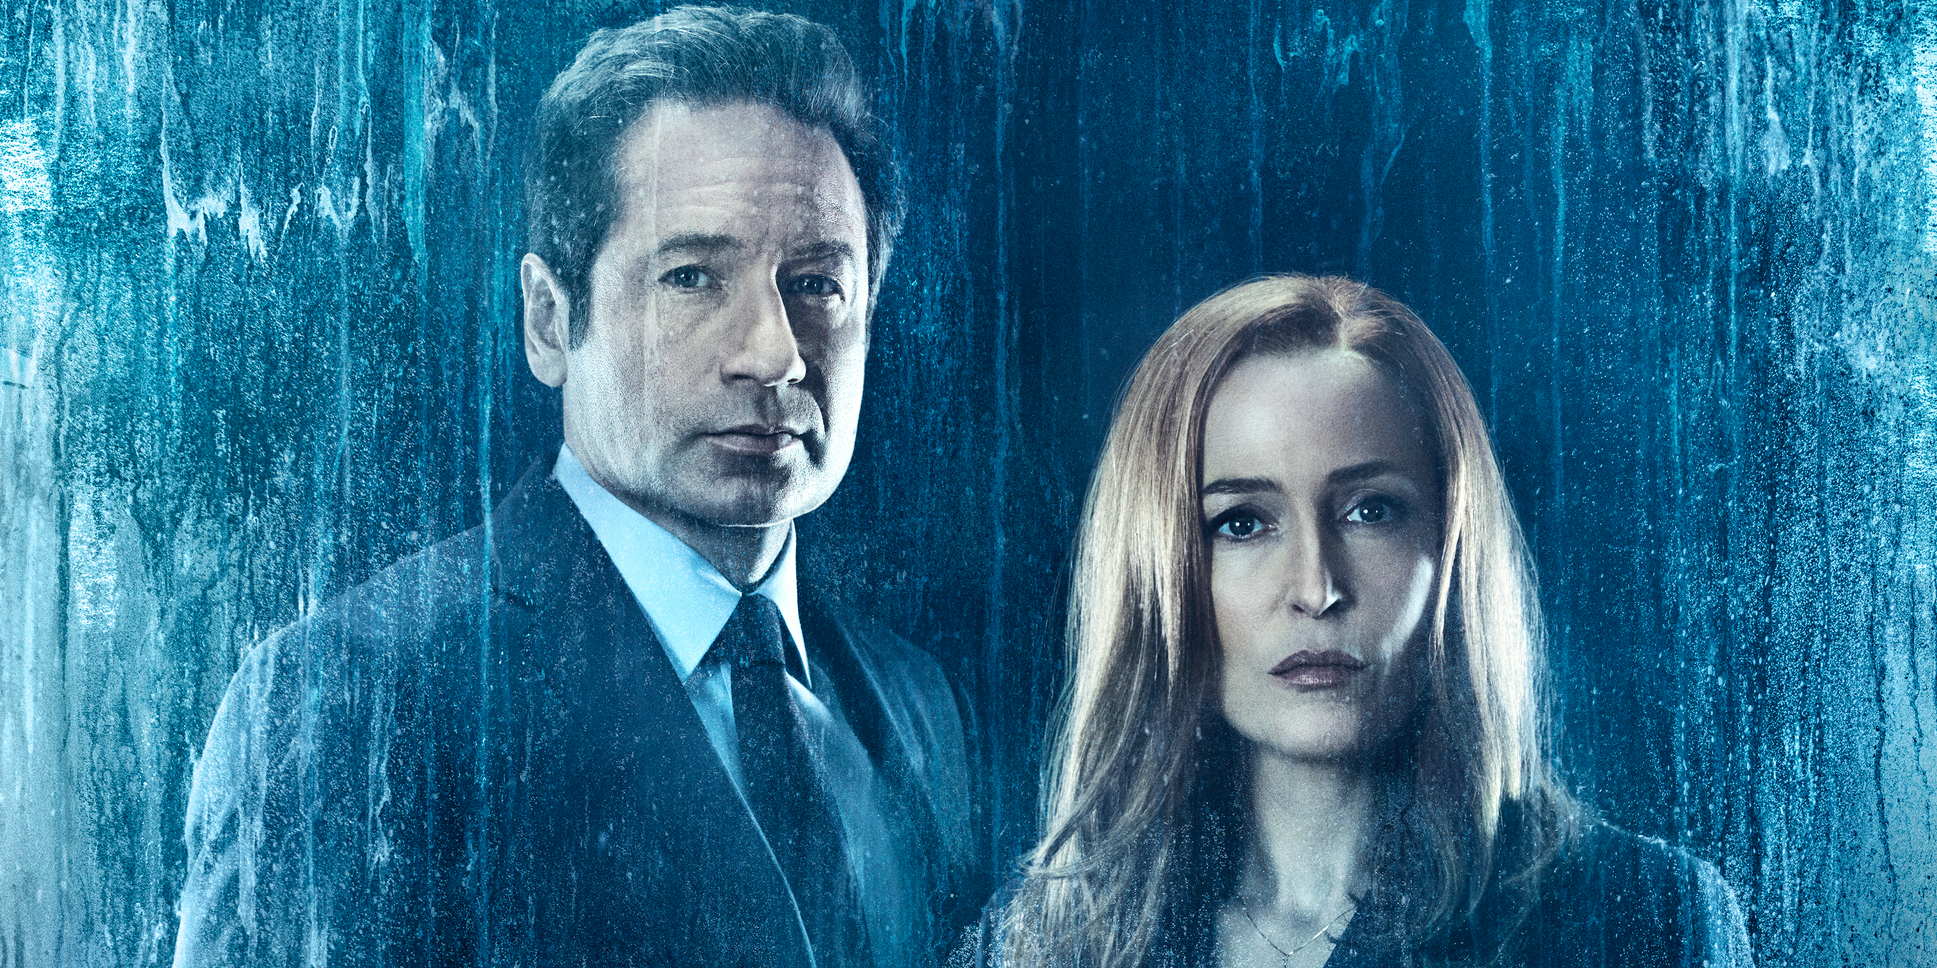 David Duchovny and Gillian Anderson in The X-Files Season 11